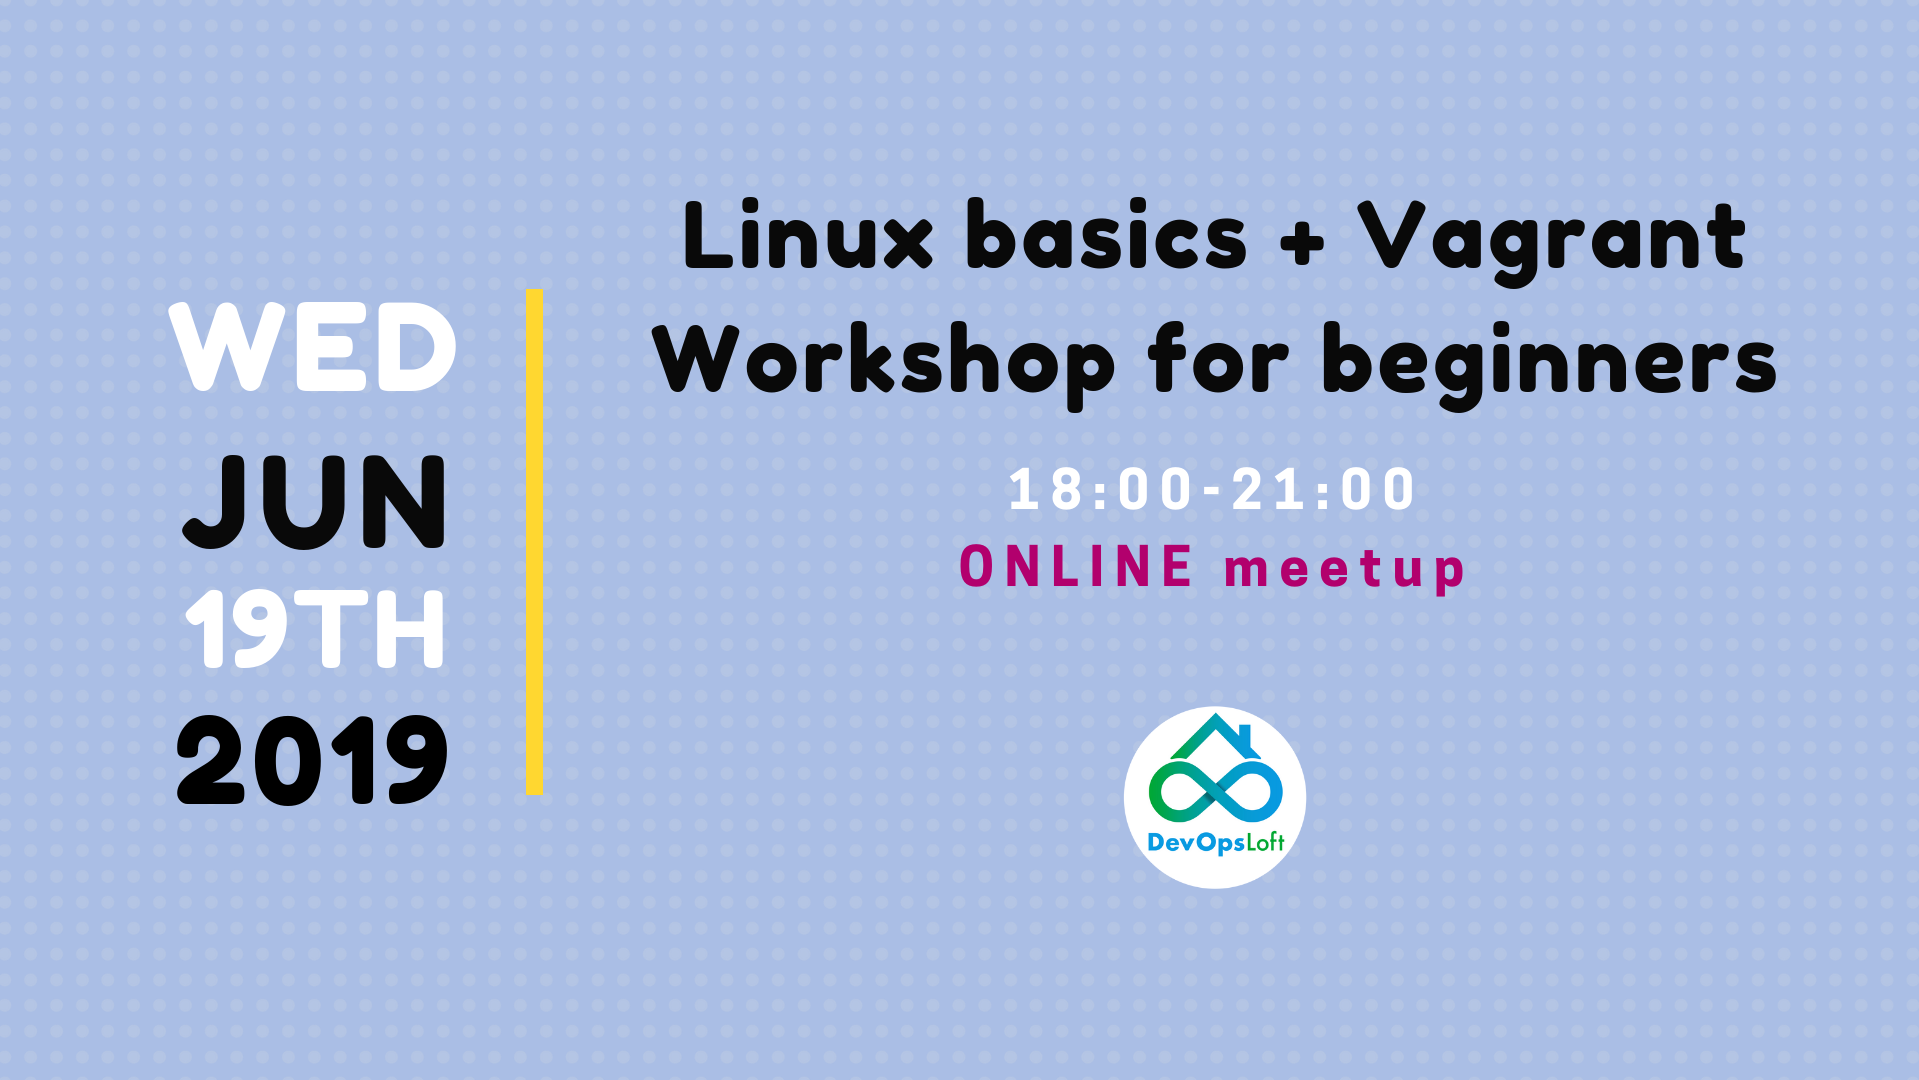 Linux basics + Vagrant - workshop for beginners